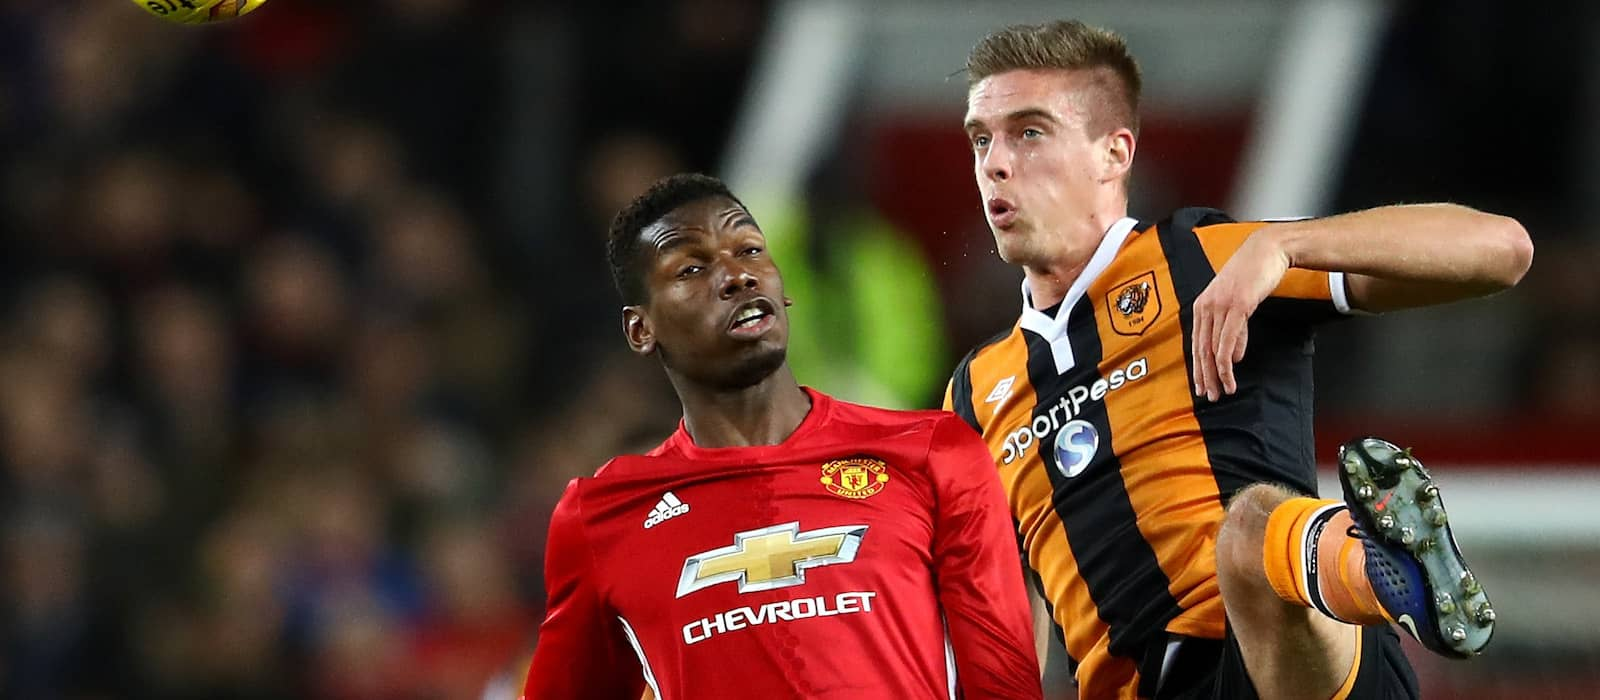 Man United fans thrilled with Paul Pogba's performance against Hull City